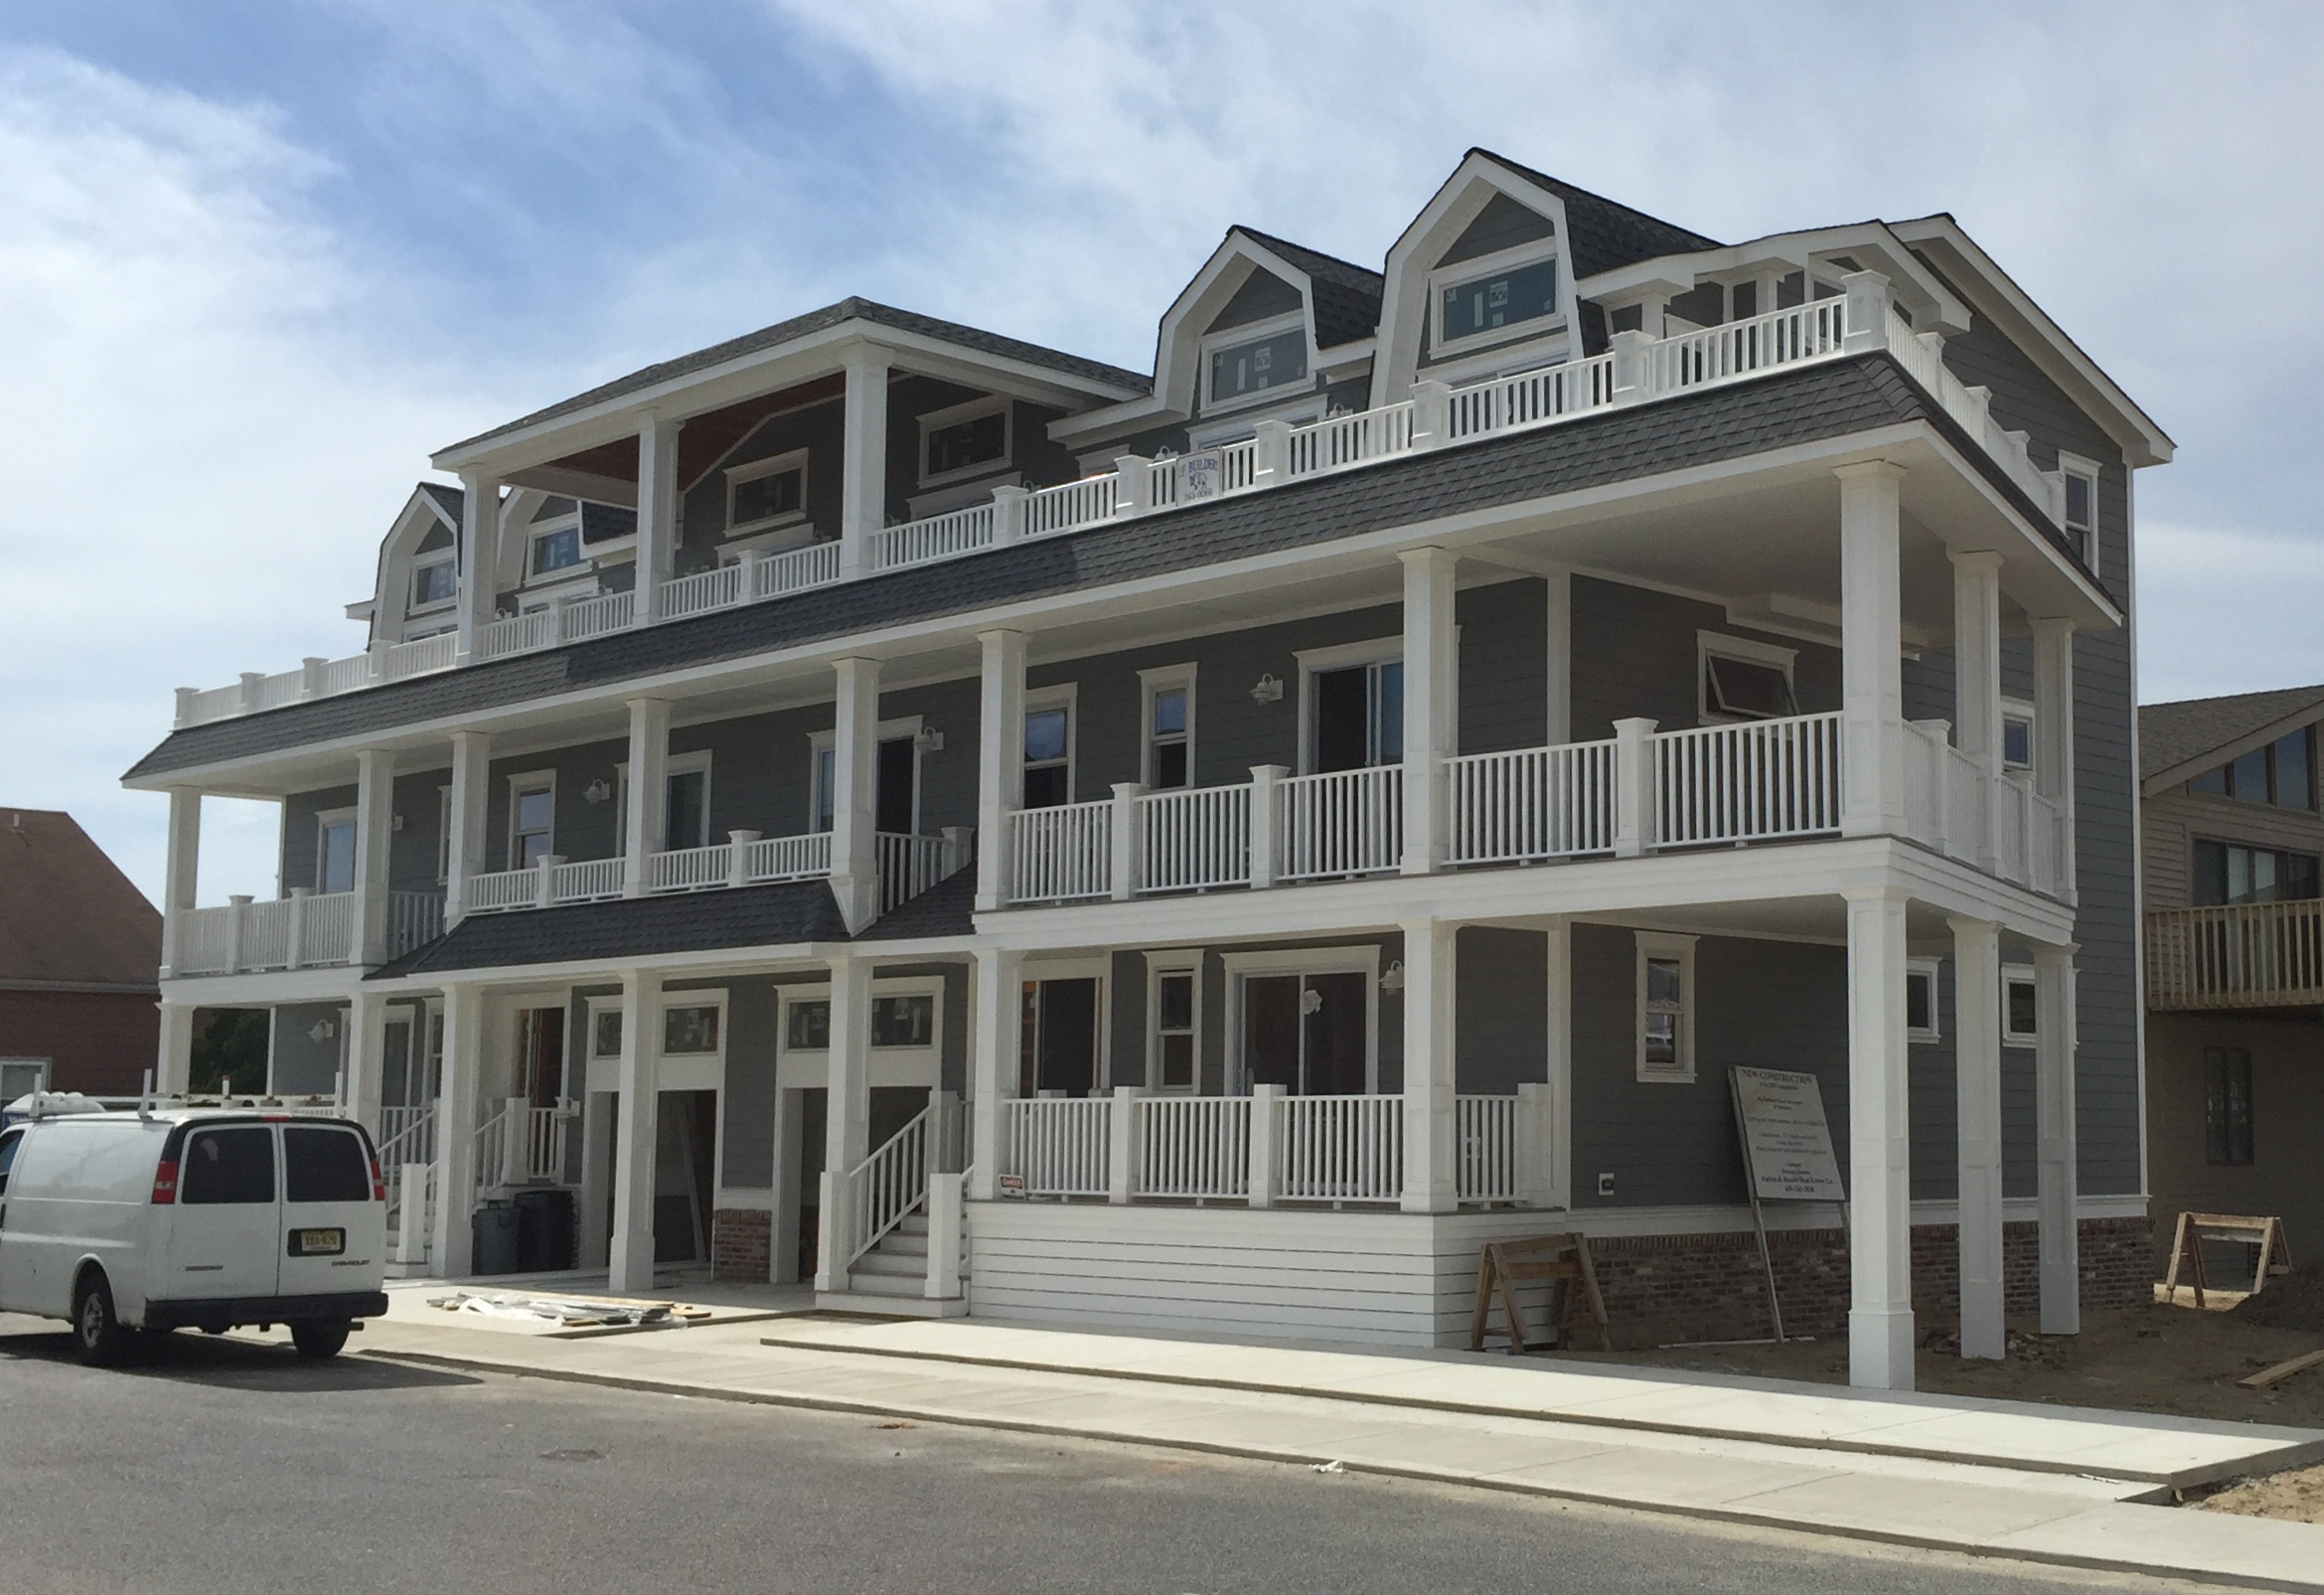 6400 Pleasure Ave., South, Sea Isle City, NJ